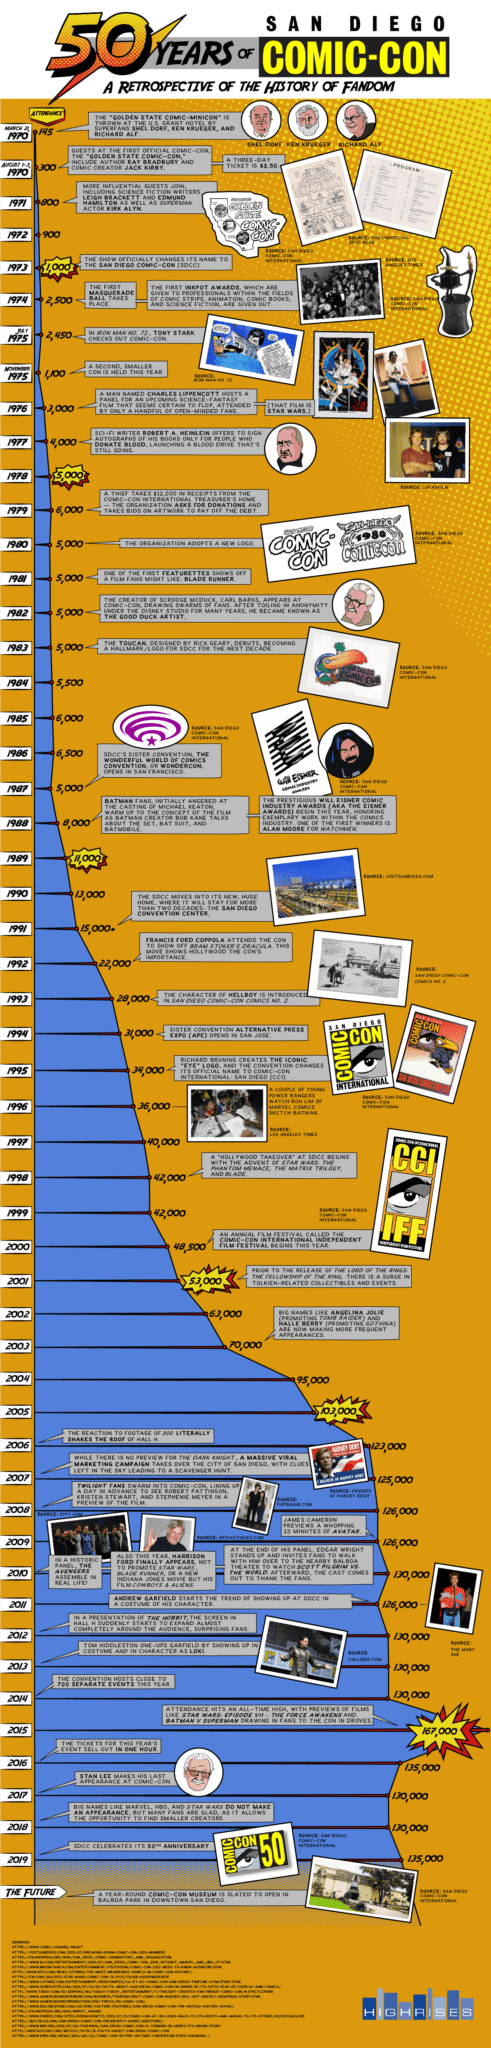 50 years of san diego comic-con infographic